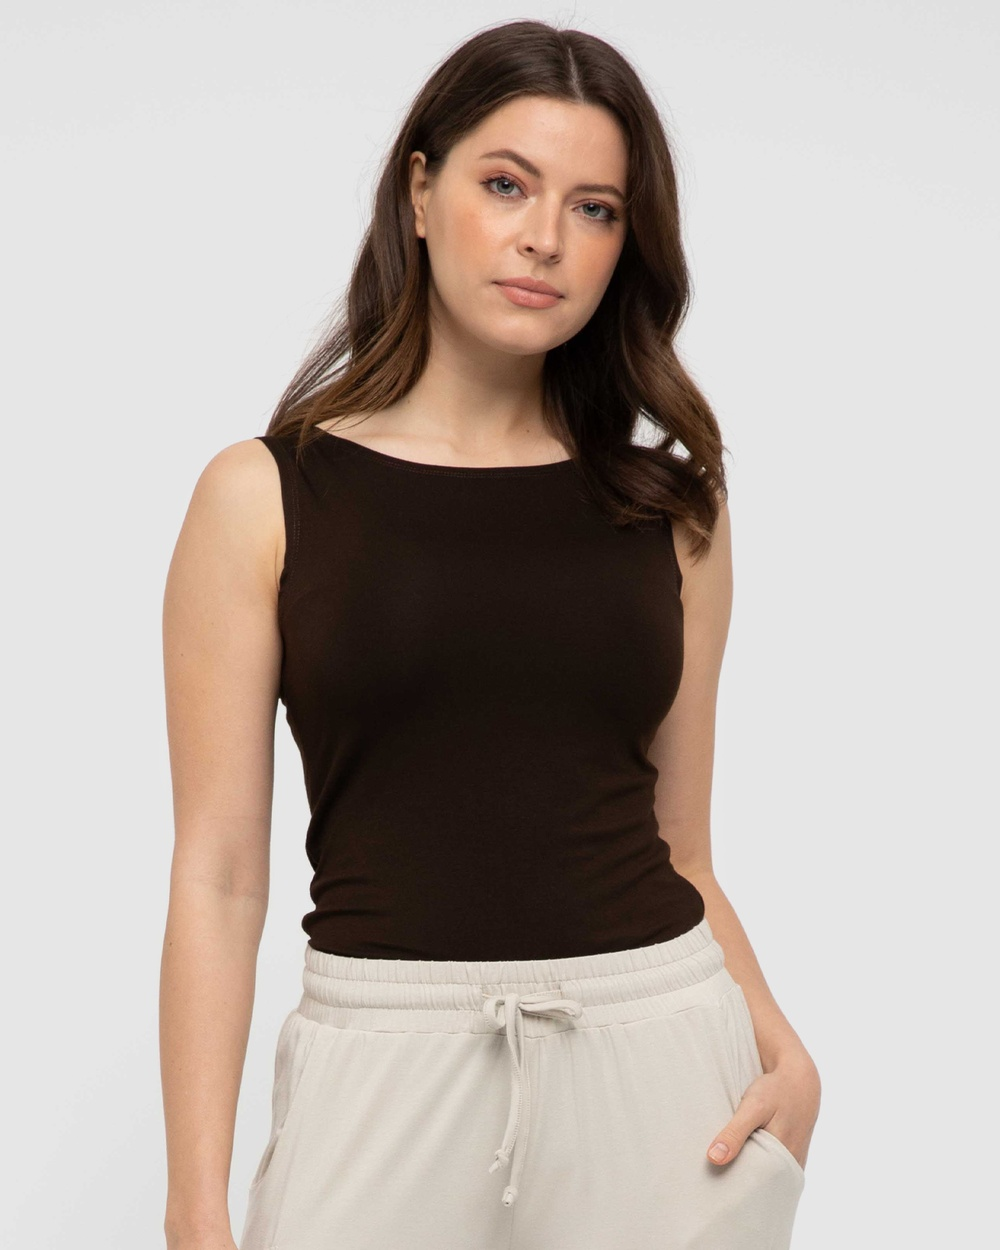 Bamboo Body Shell Top Tops Chocolate